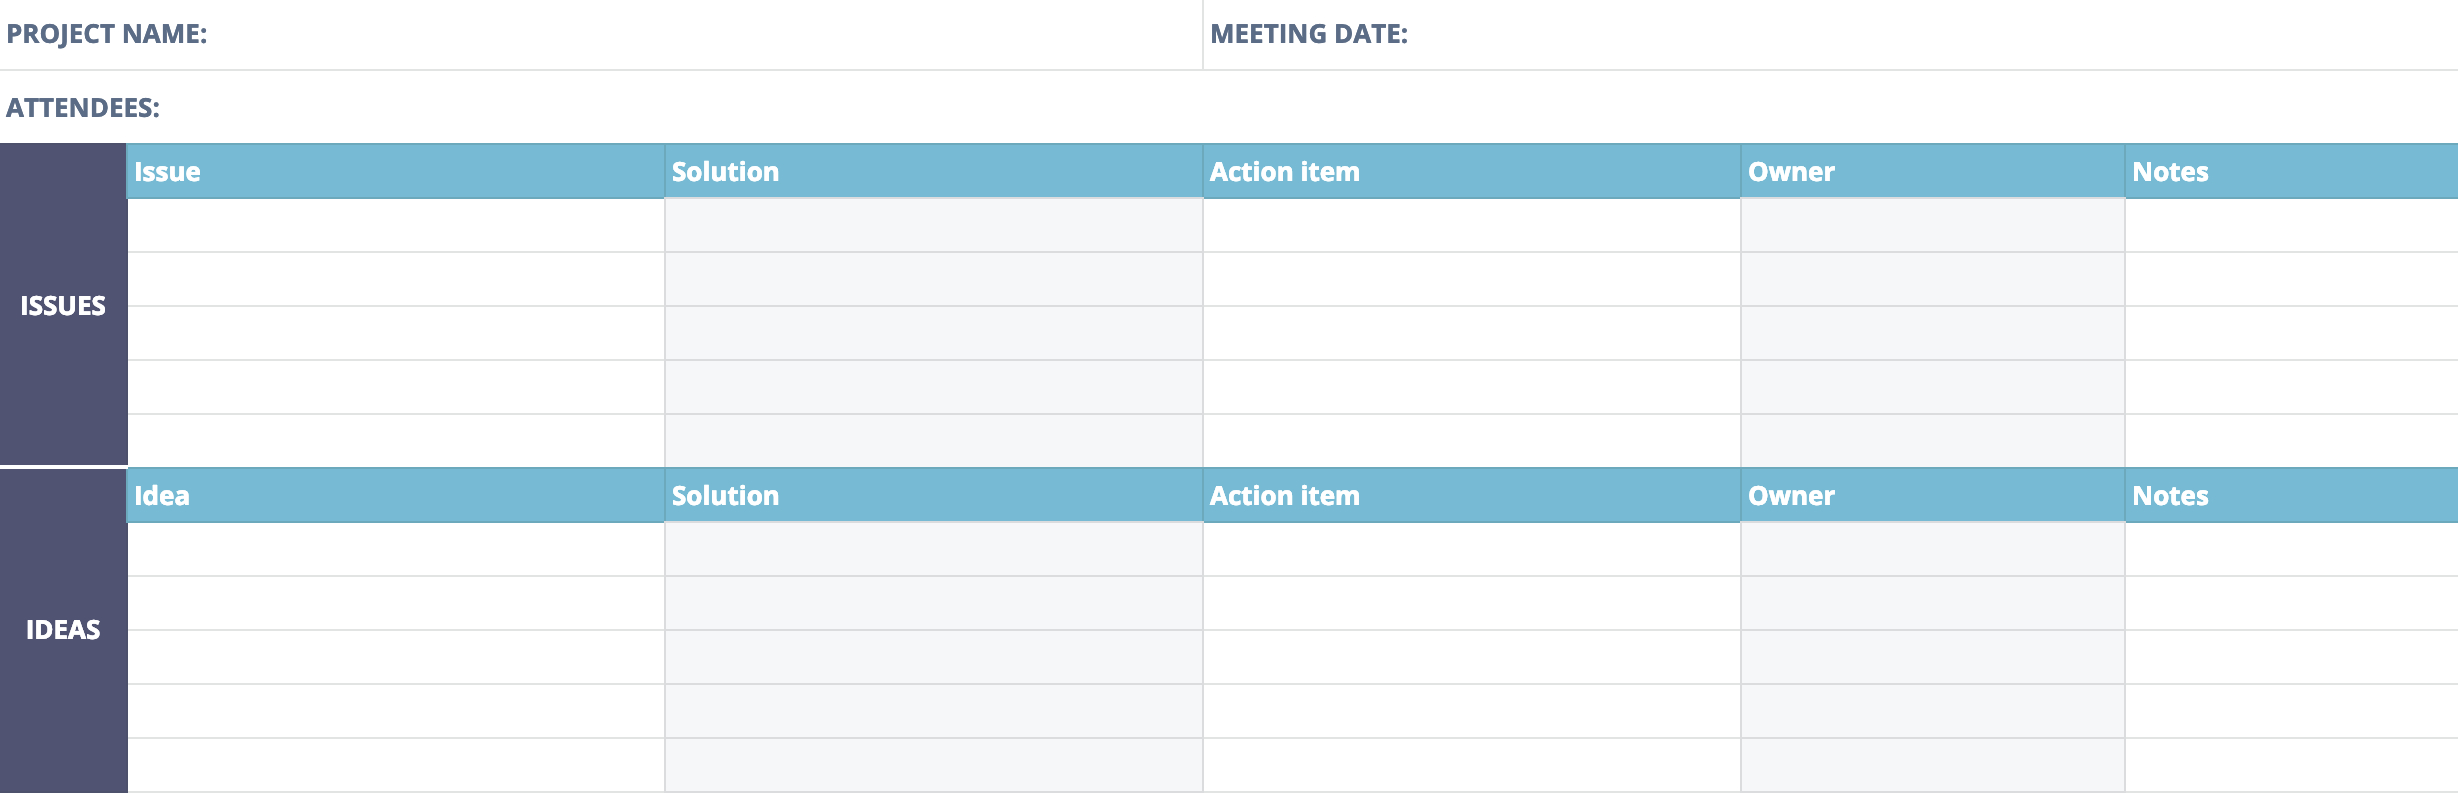 Post Mortem Meeting Template And Tips | Teamgantt Pertaining To Post Mortem Template Powerpoint